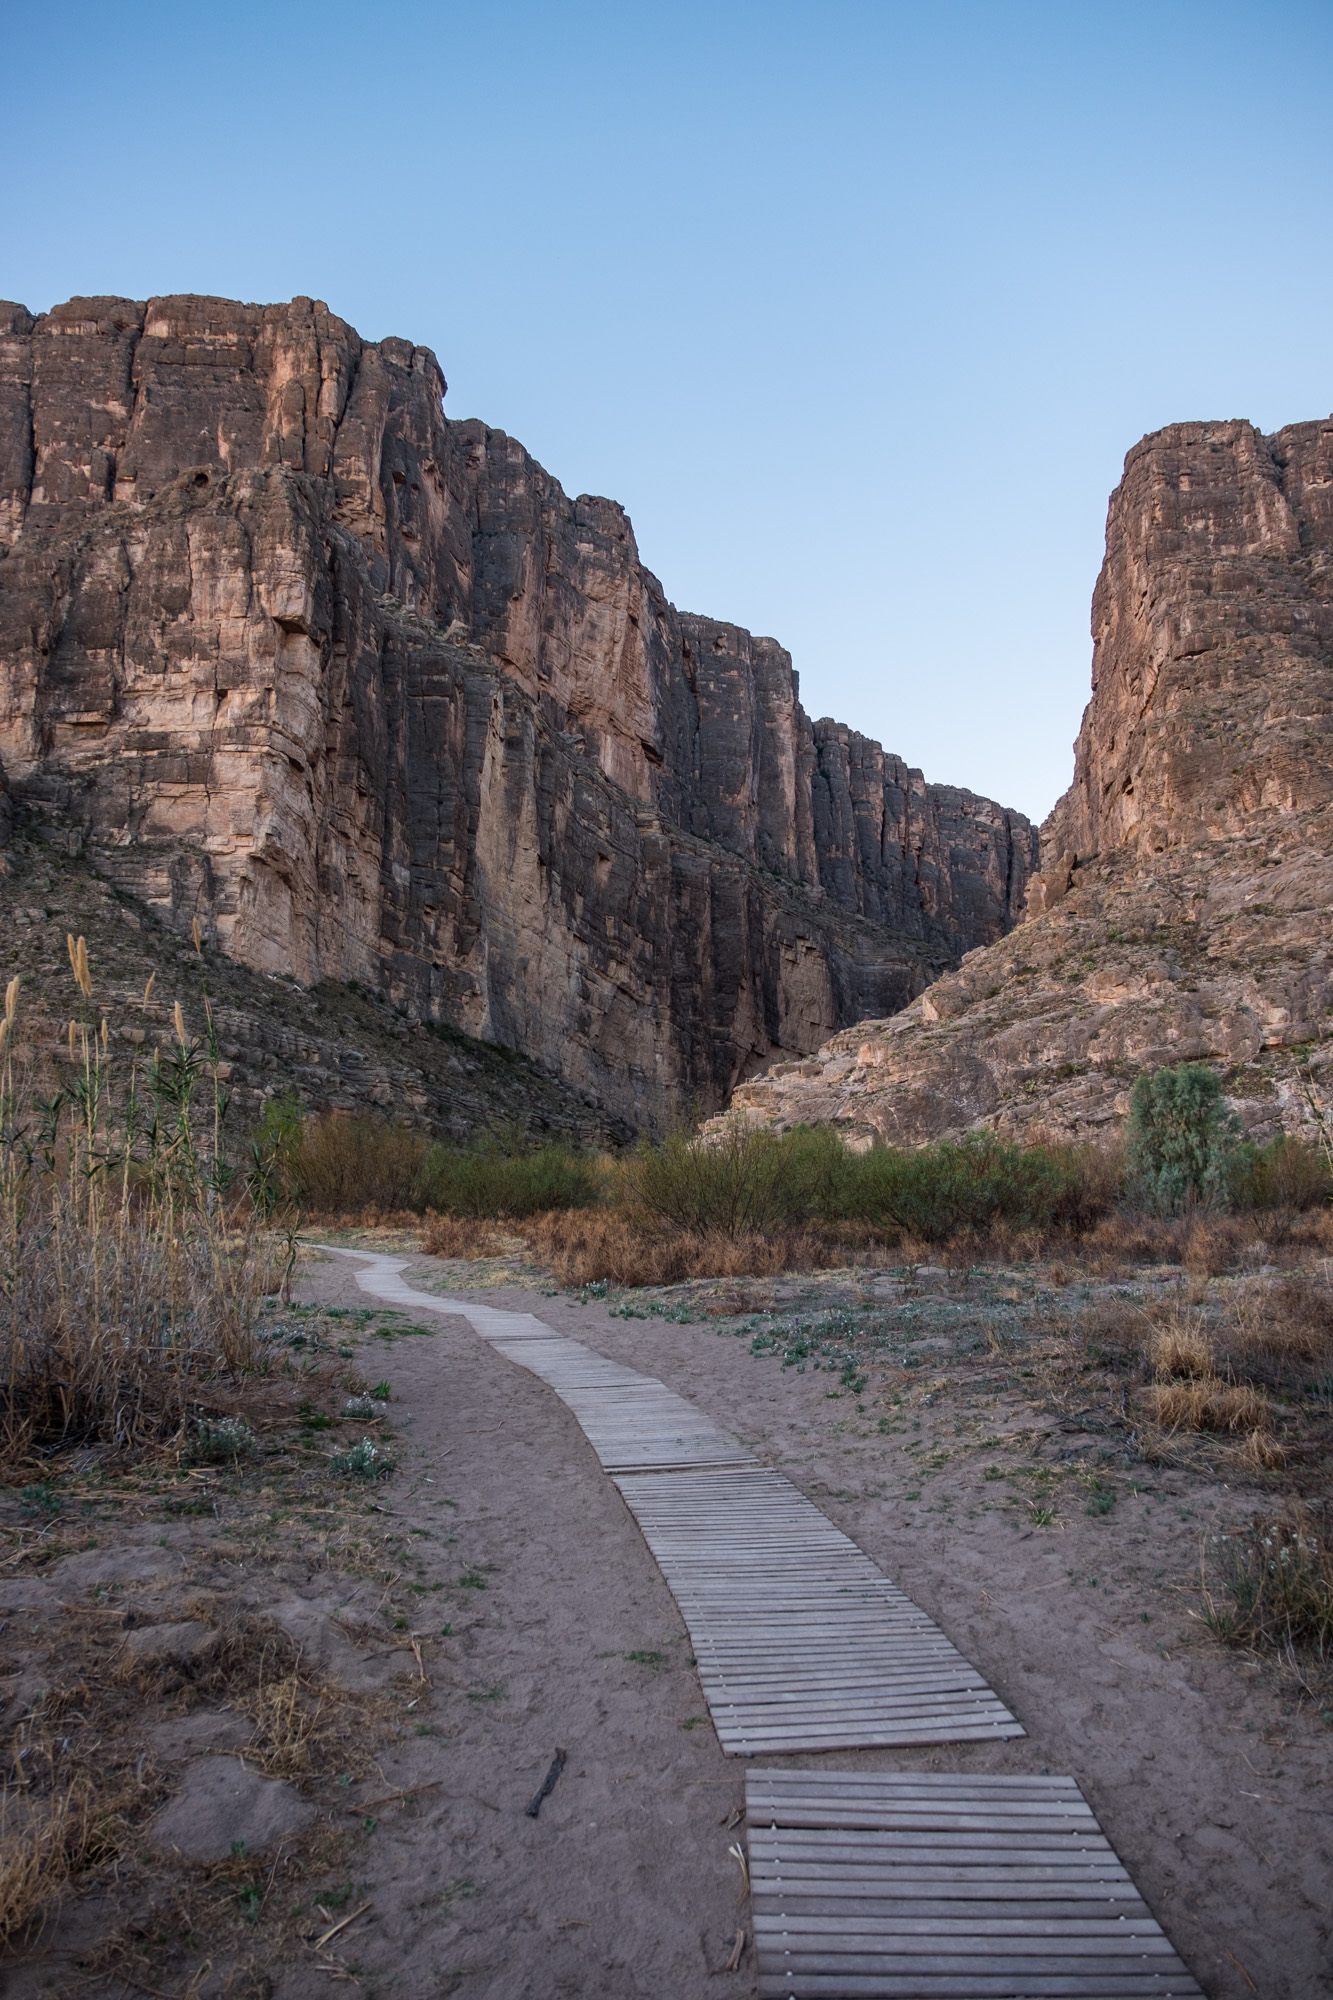 The trail leading up to the canyon at sunrise.